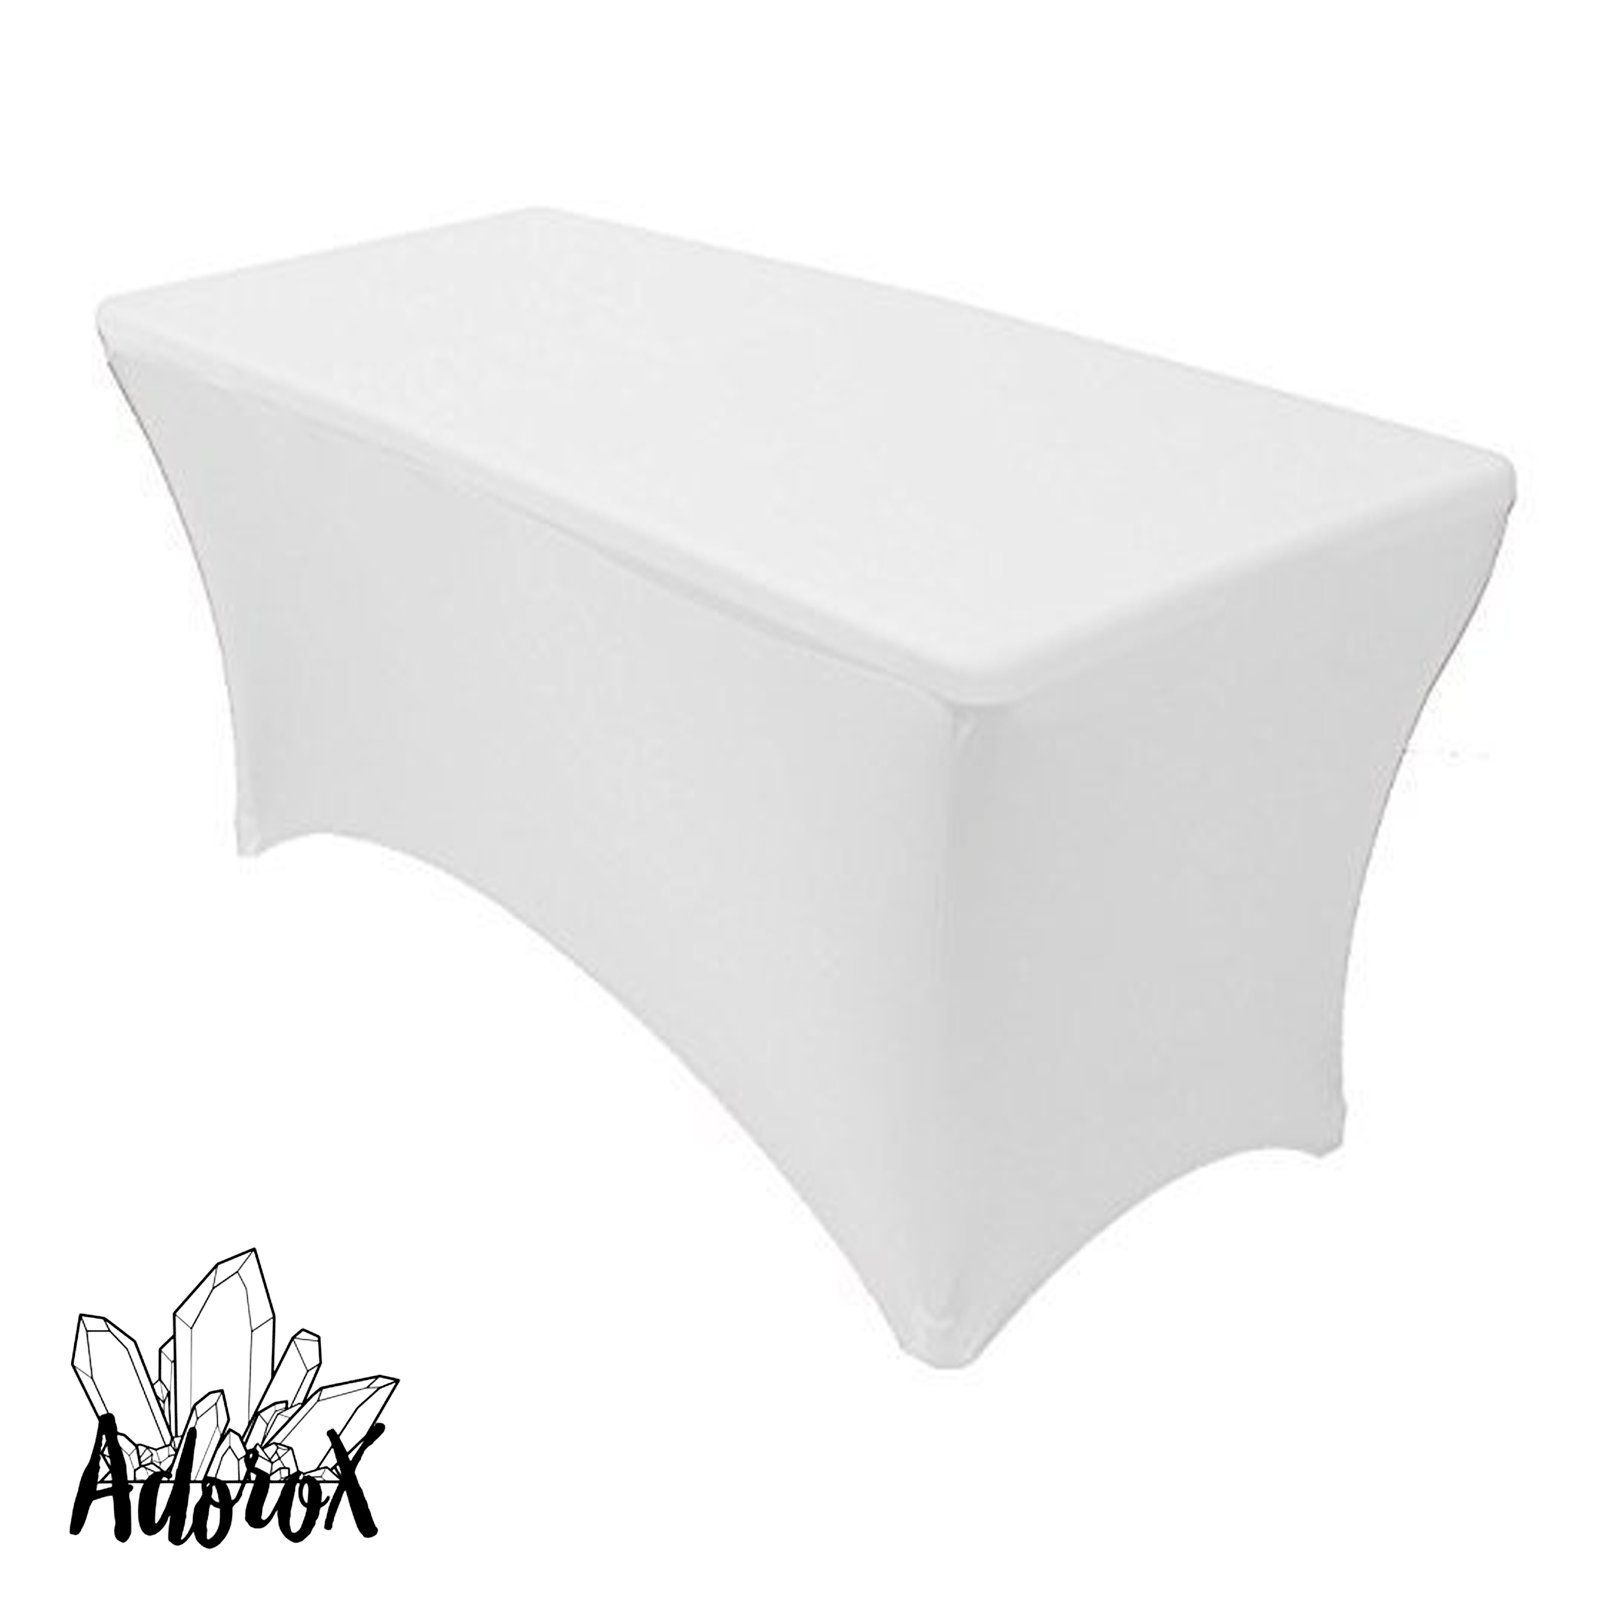 Adorox (2 Pcs 4 ft White) Stretch Fabric Spandex Tight Fit Table Cloth Cover